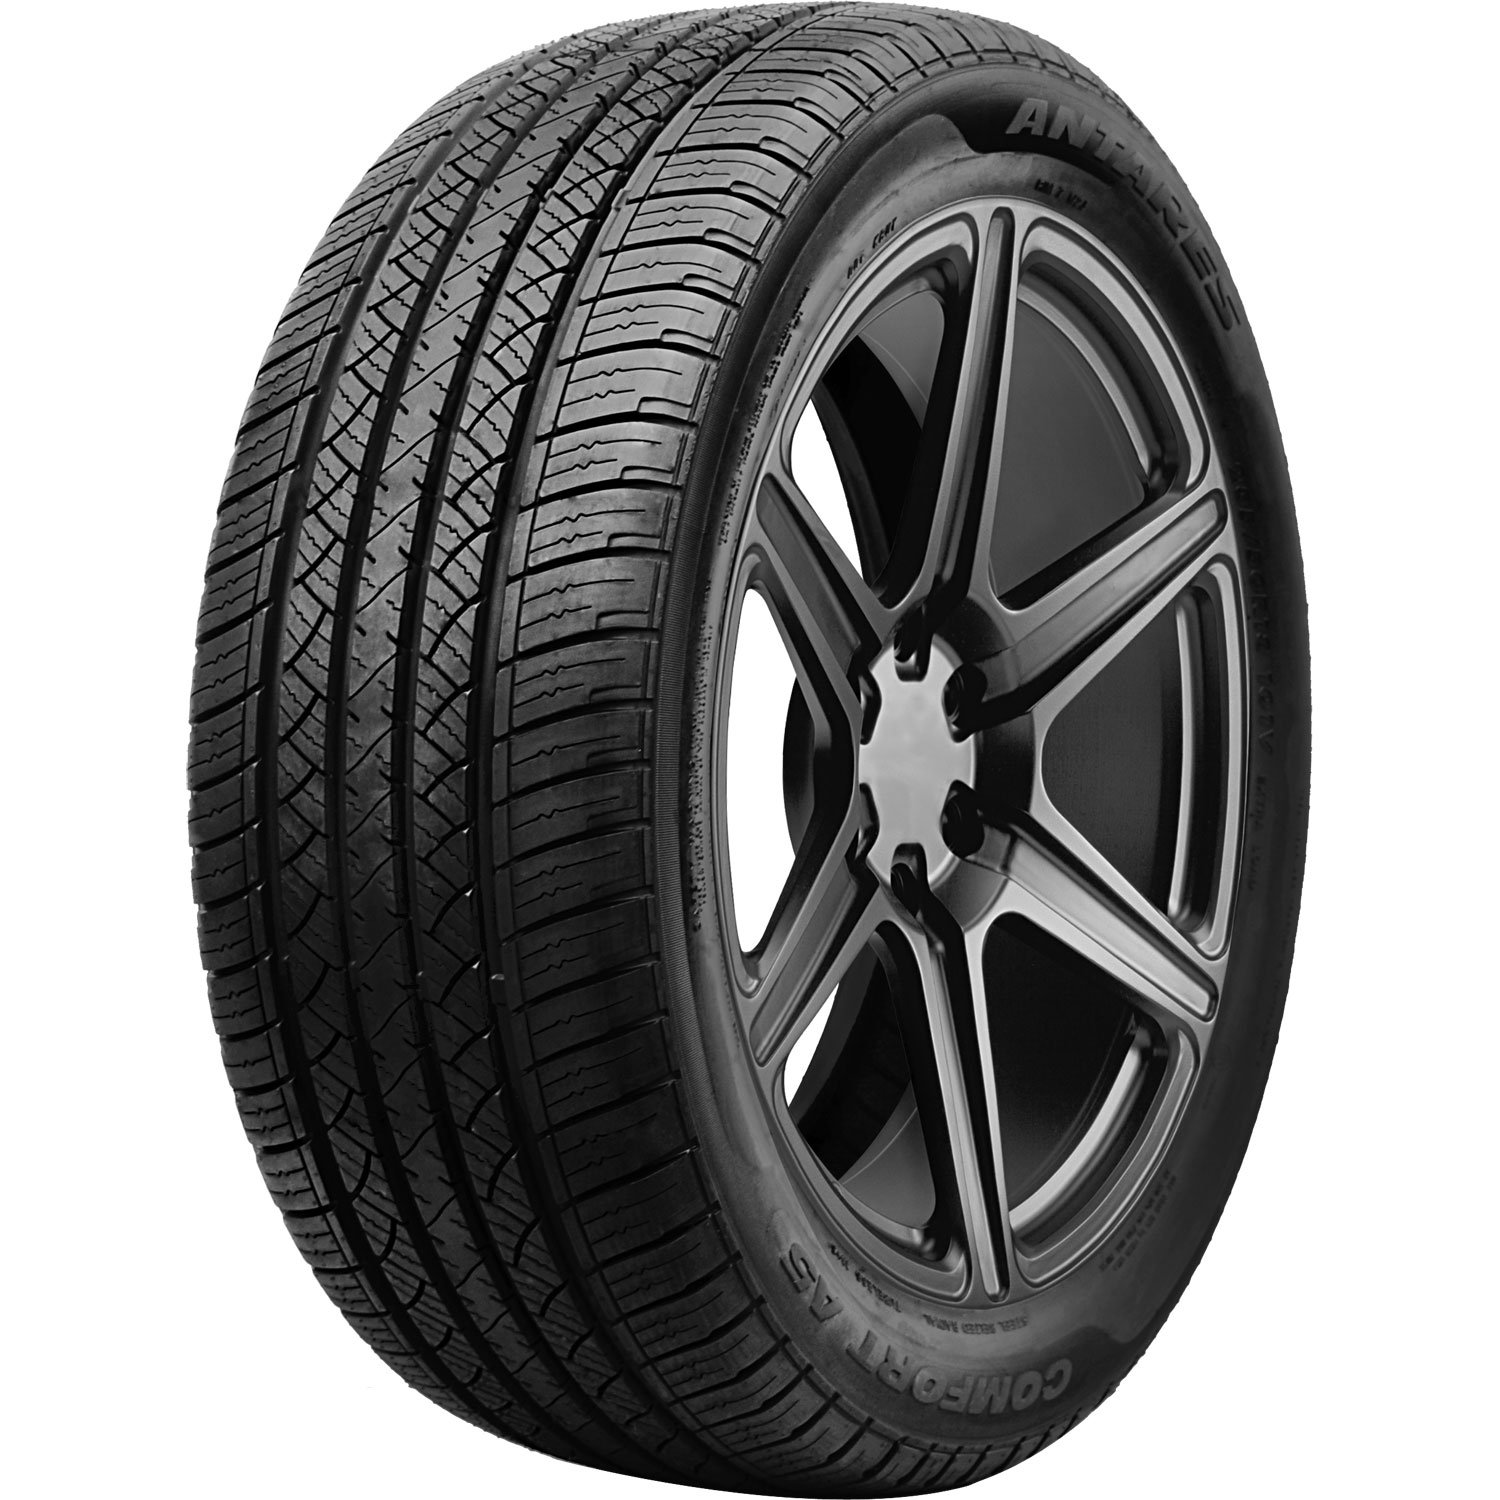 Antares COMFORT A5-265/70R17 115S